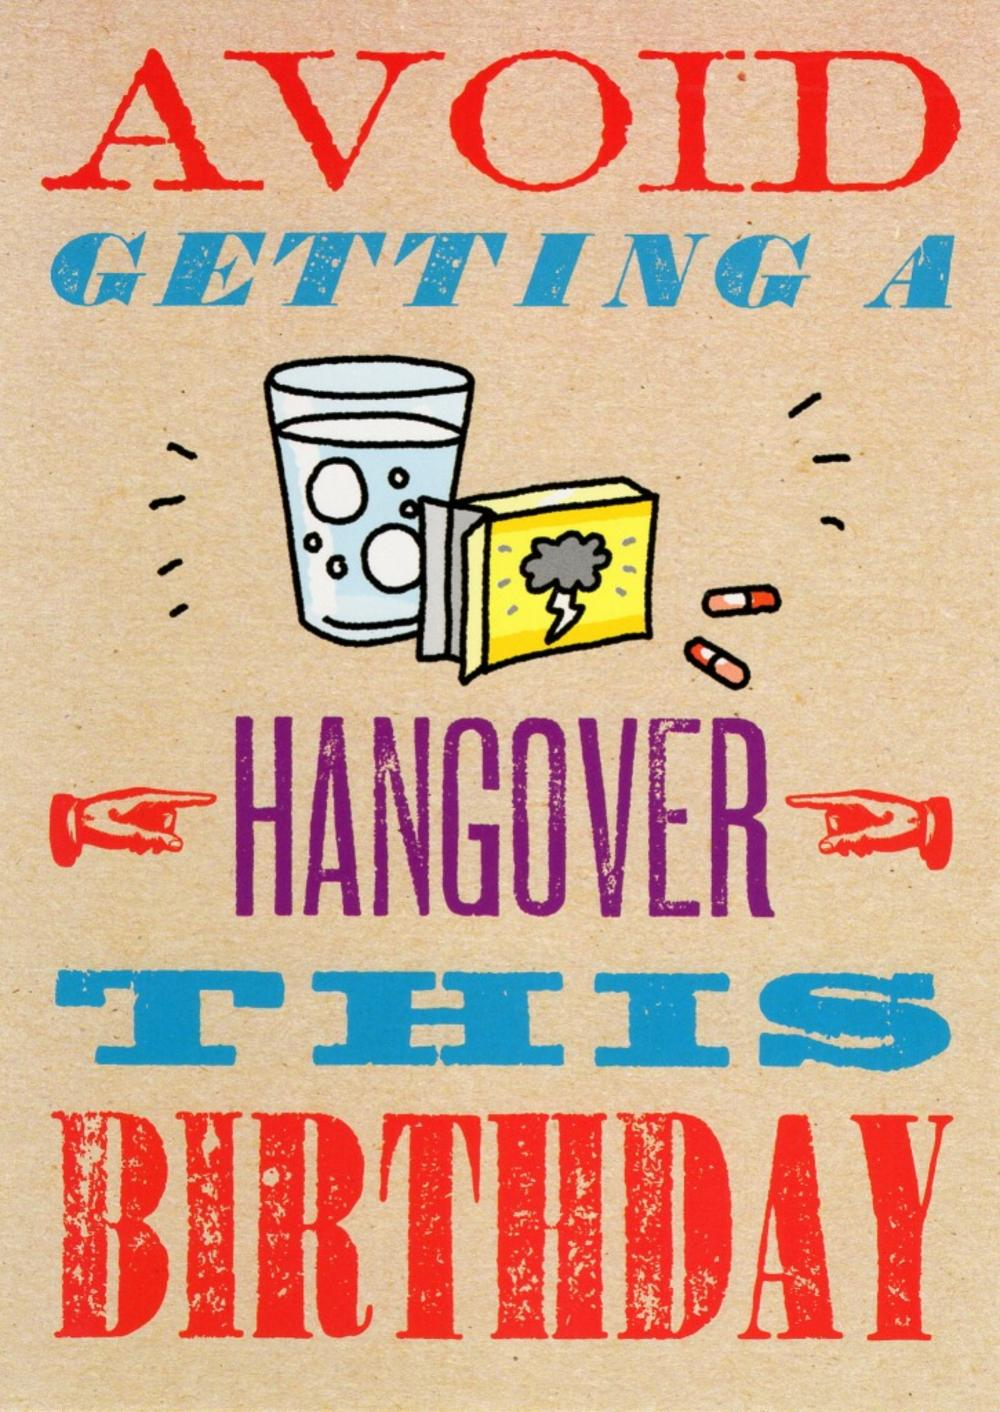 Avoid Getting A Hangover Funny Birthday Card Cards